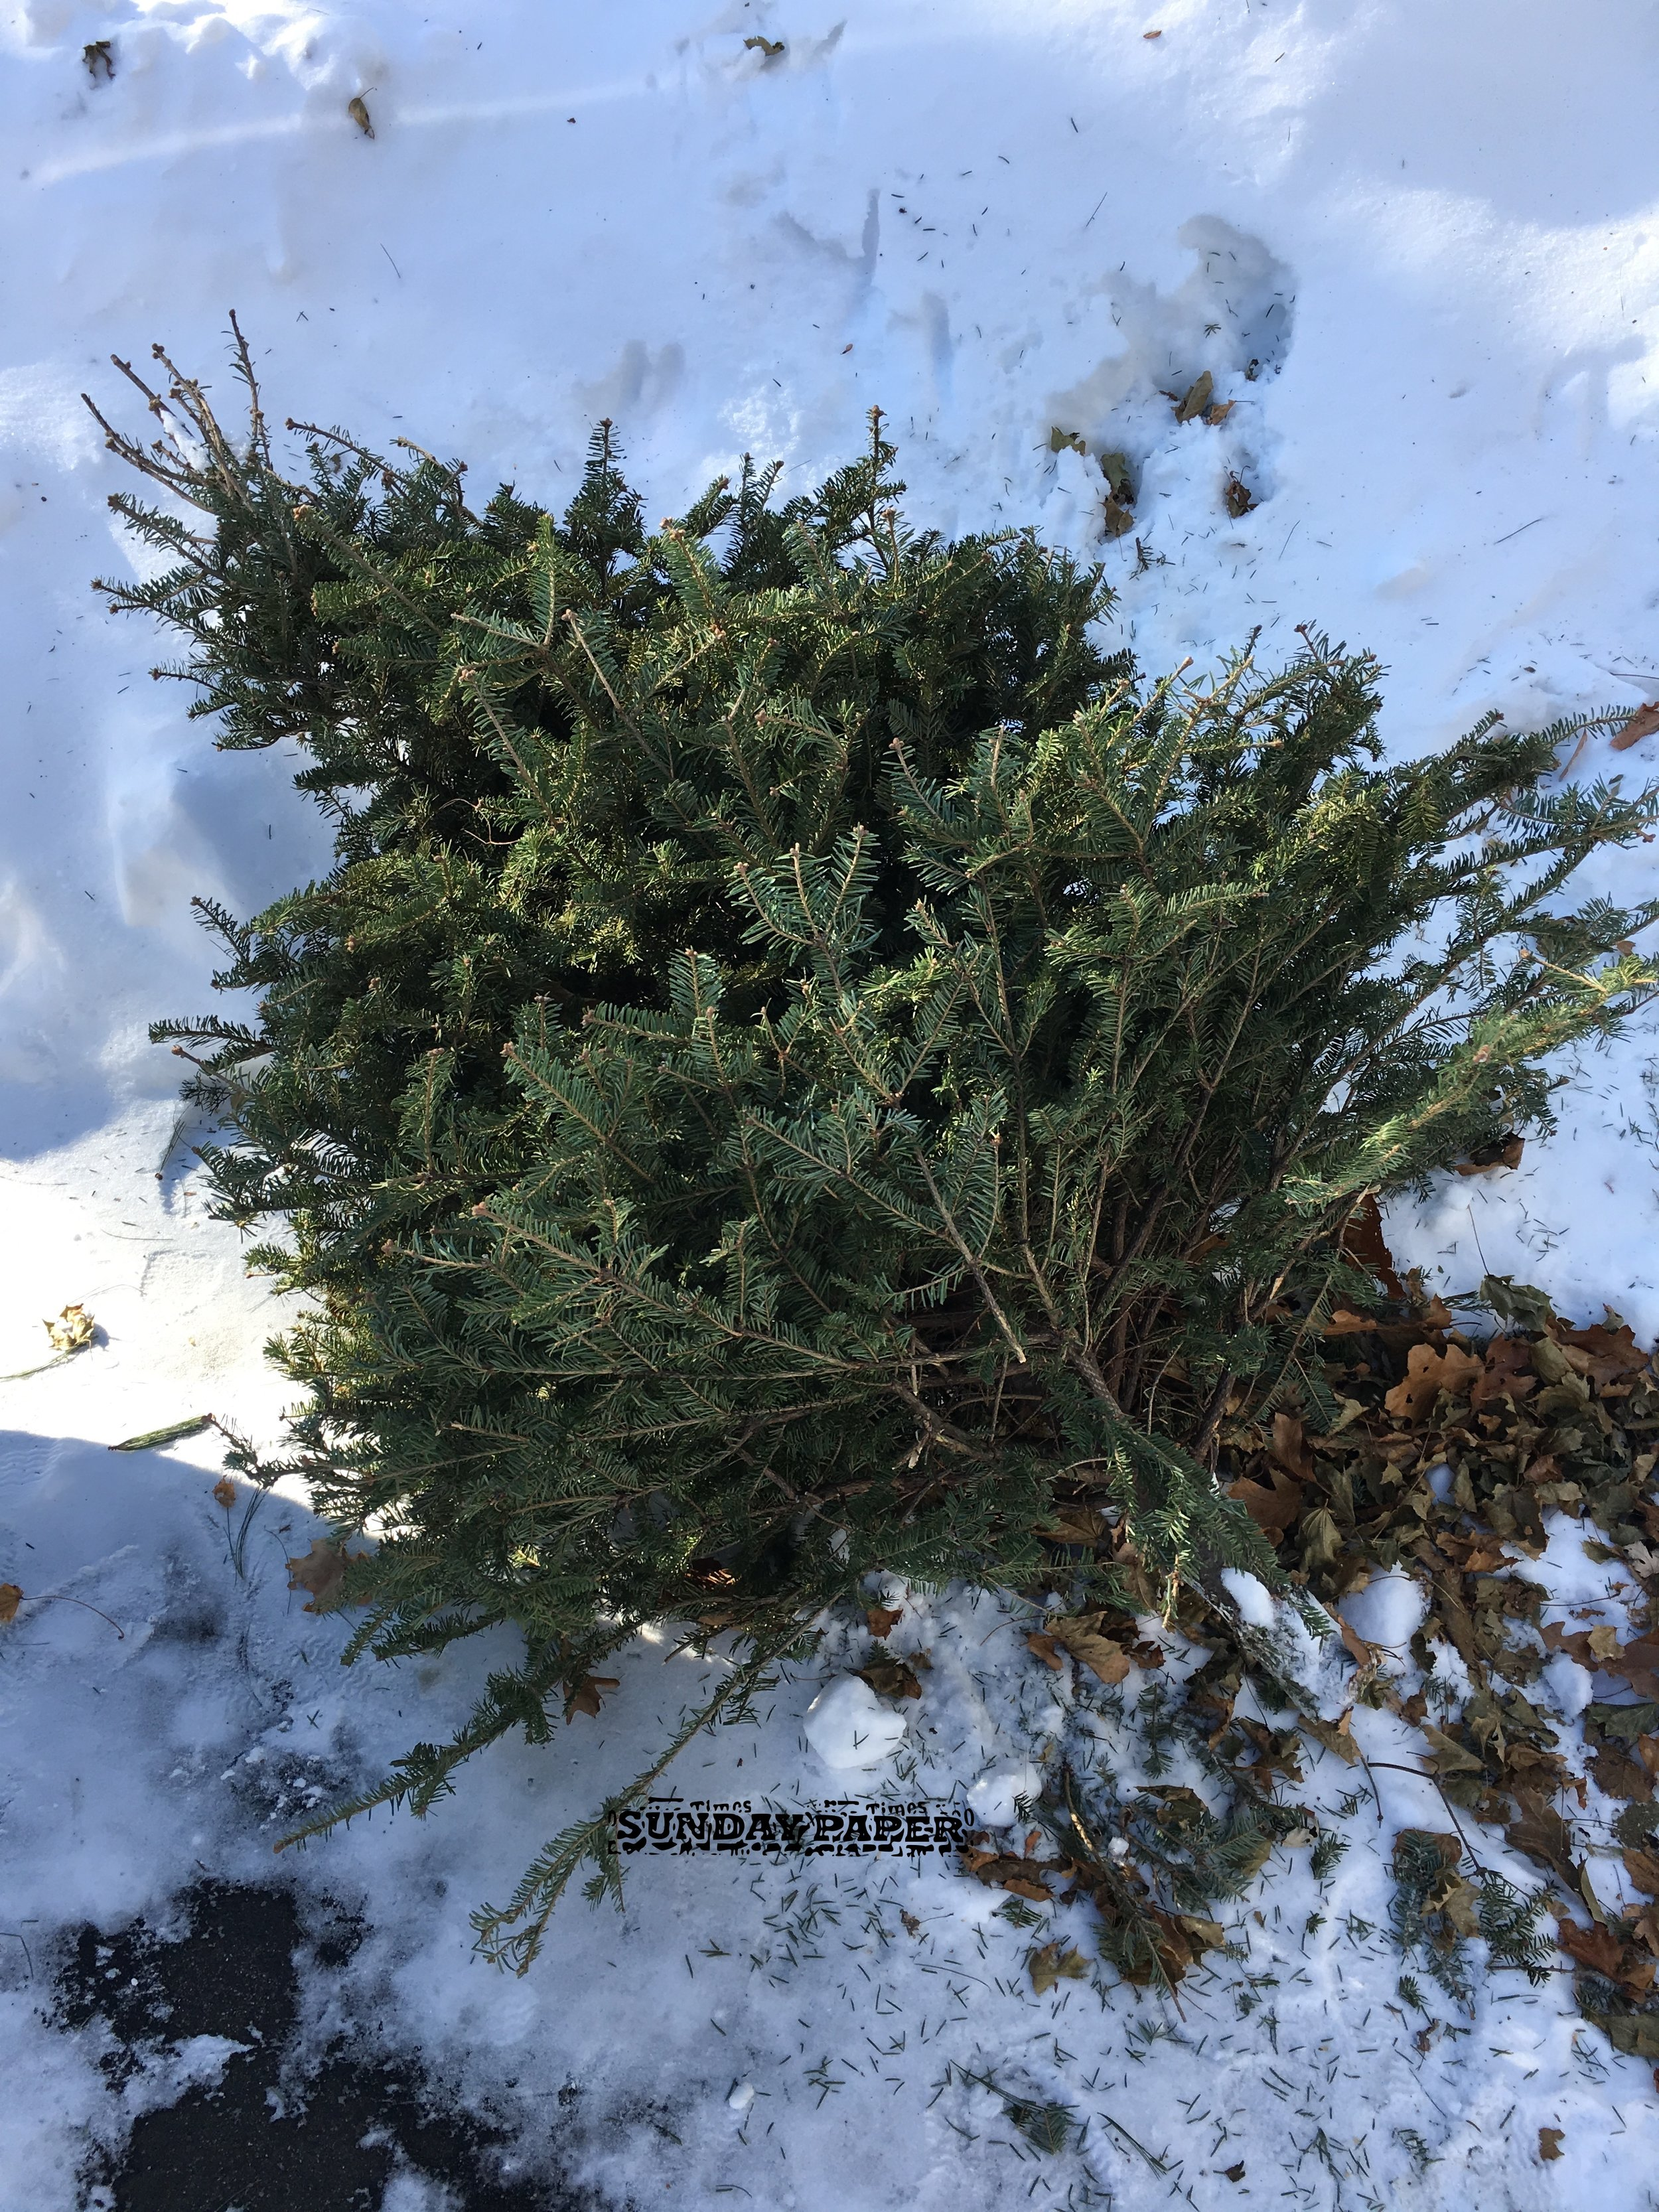 Getting the Christmas tree out of the house is just one of the events that makes this weekend distinctive.